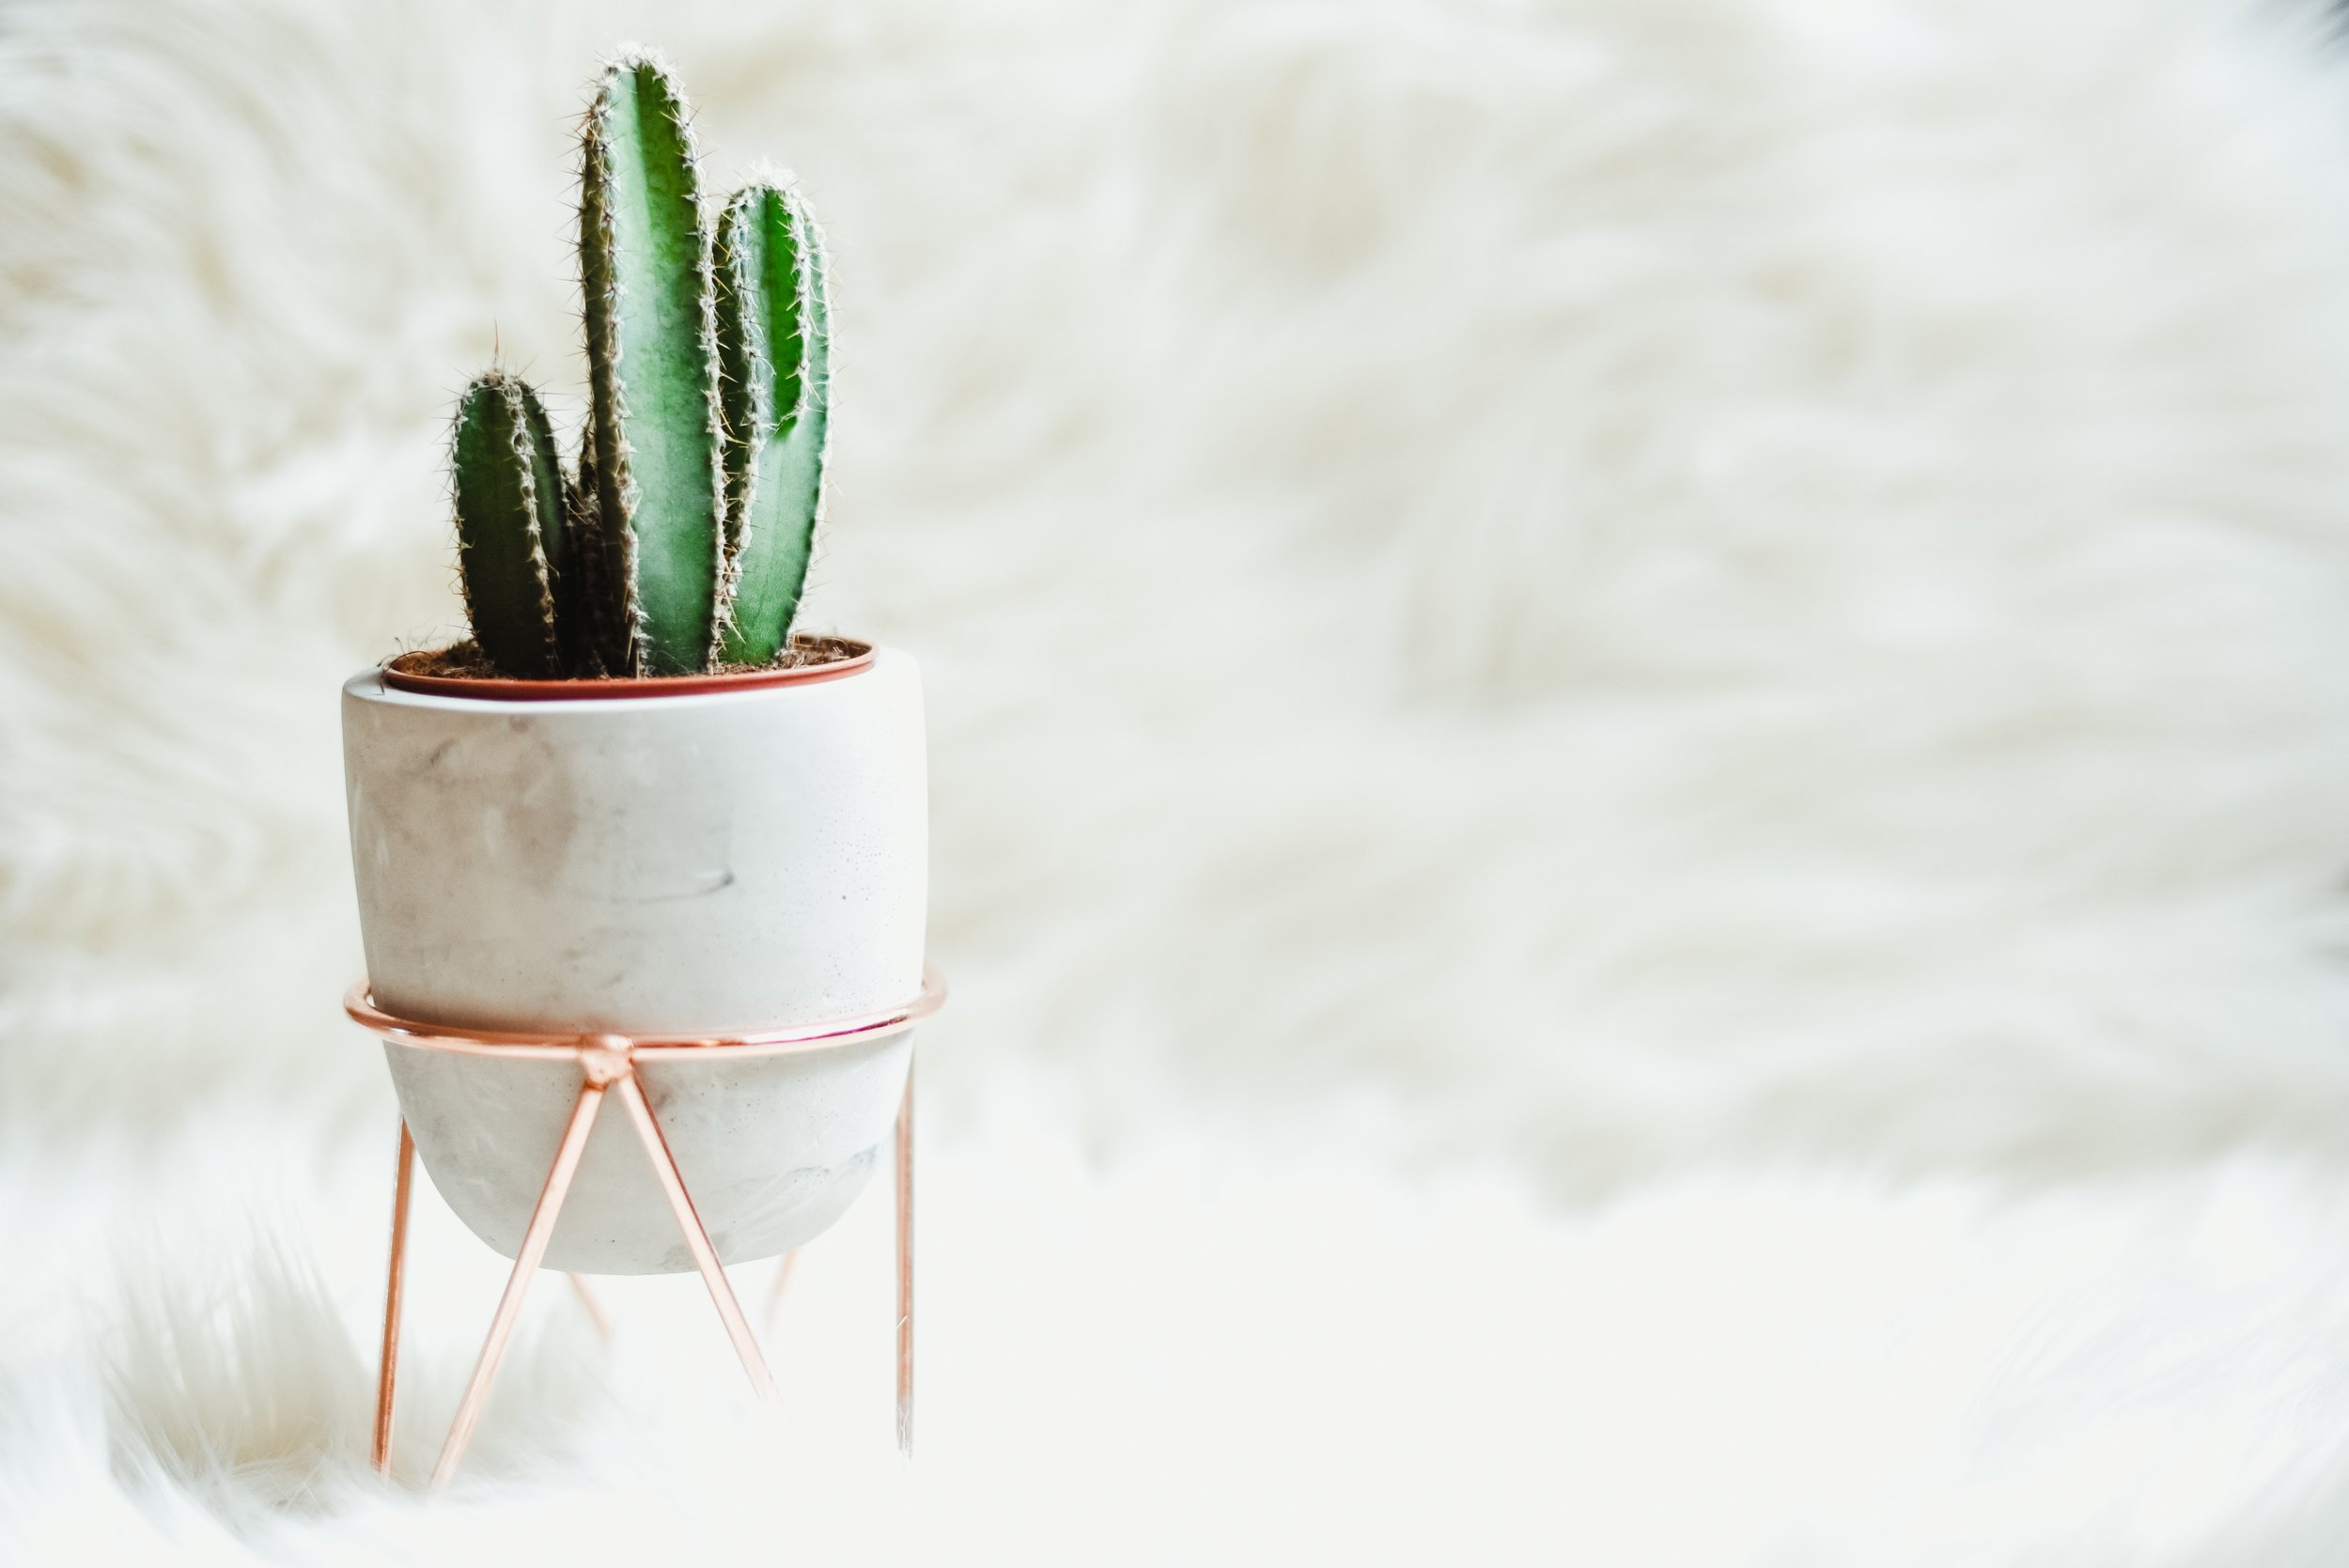 The 10 Essential House Plants - Cactus